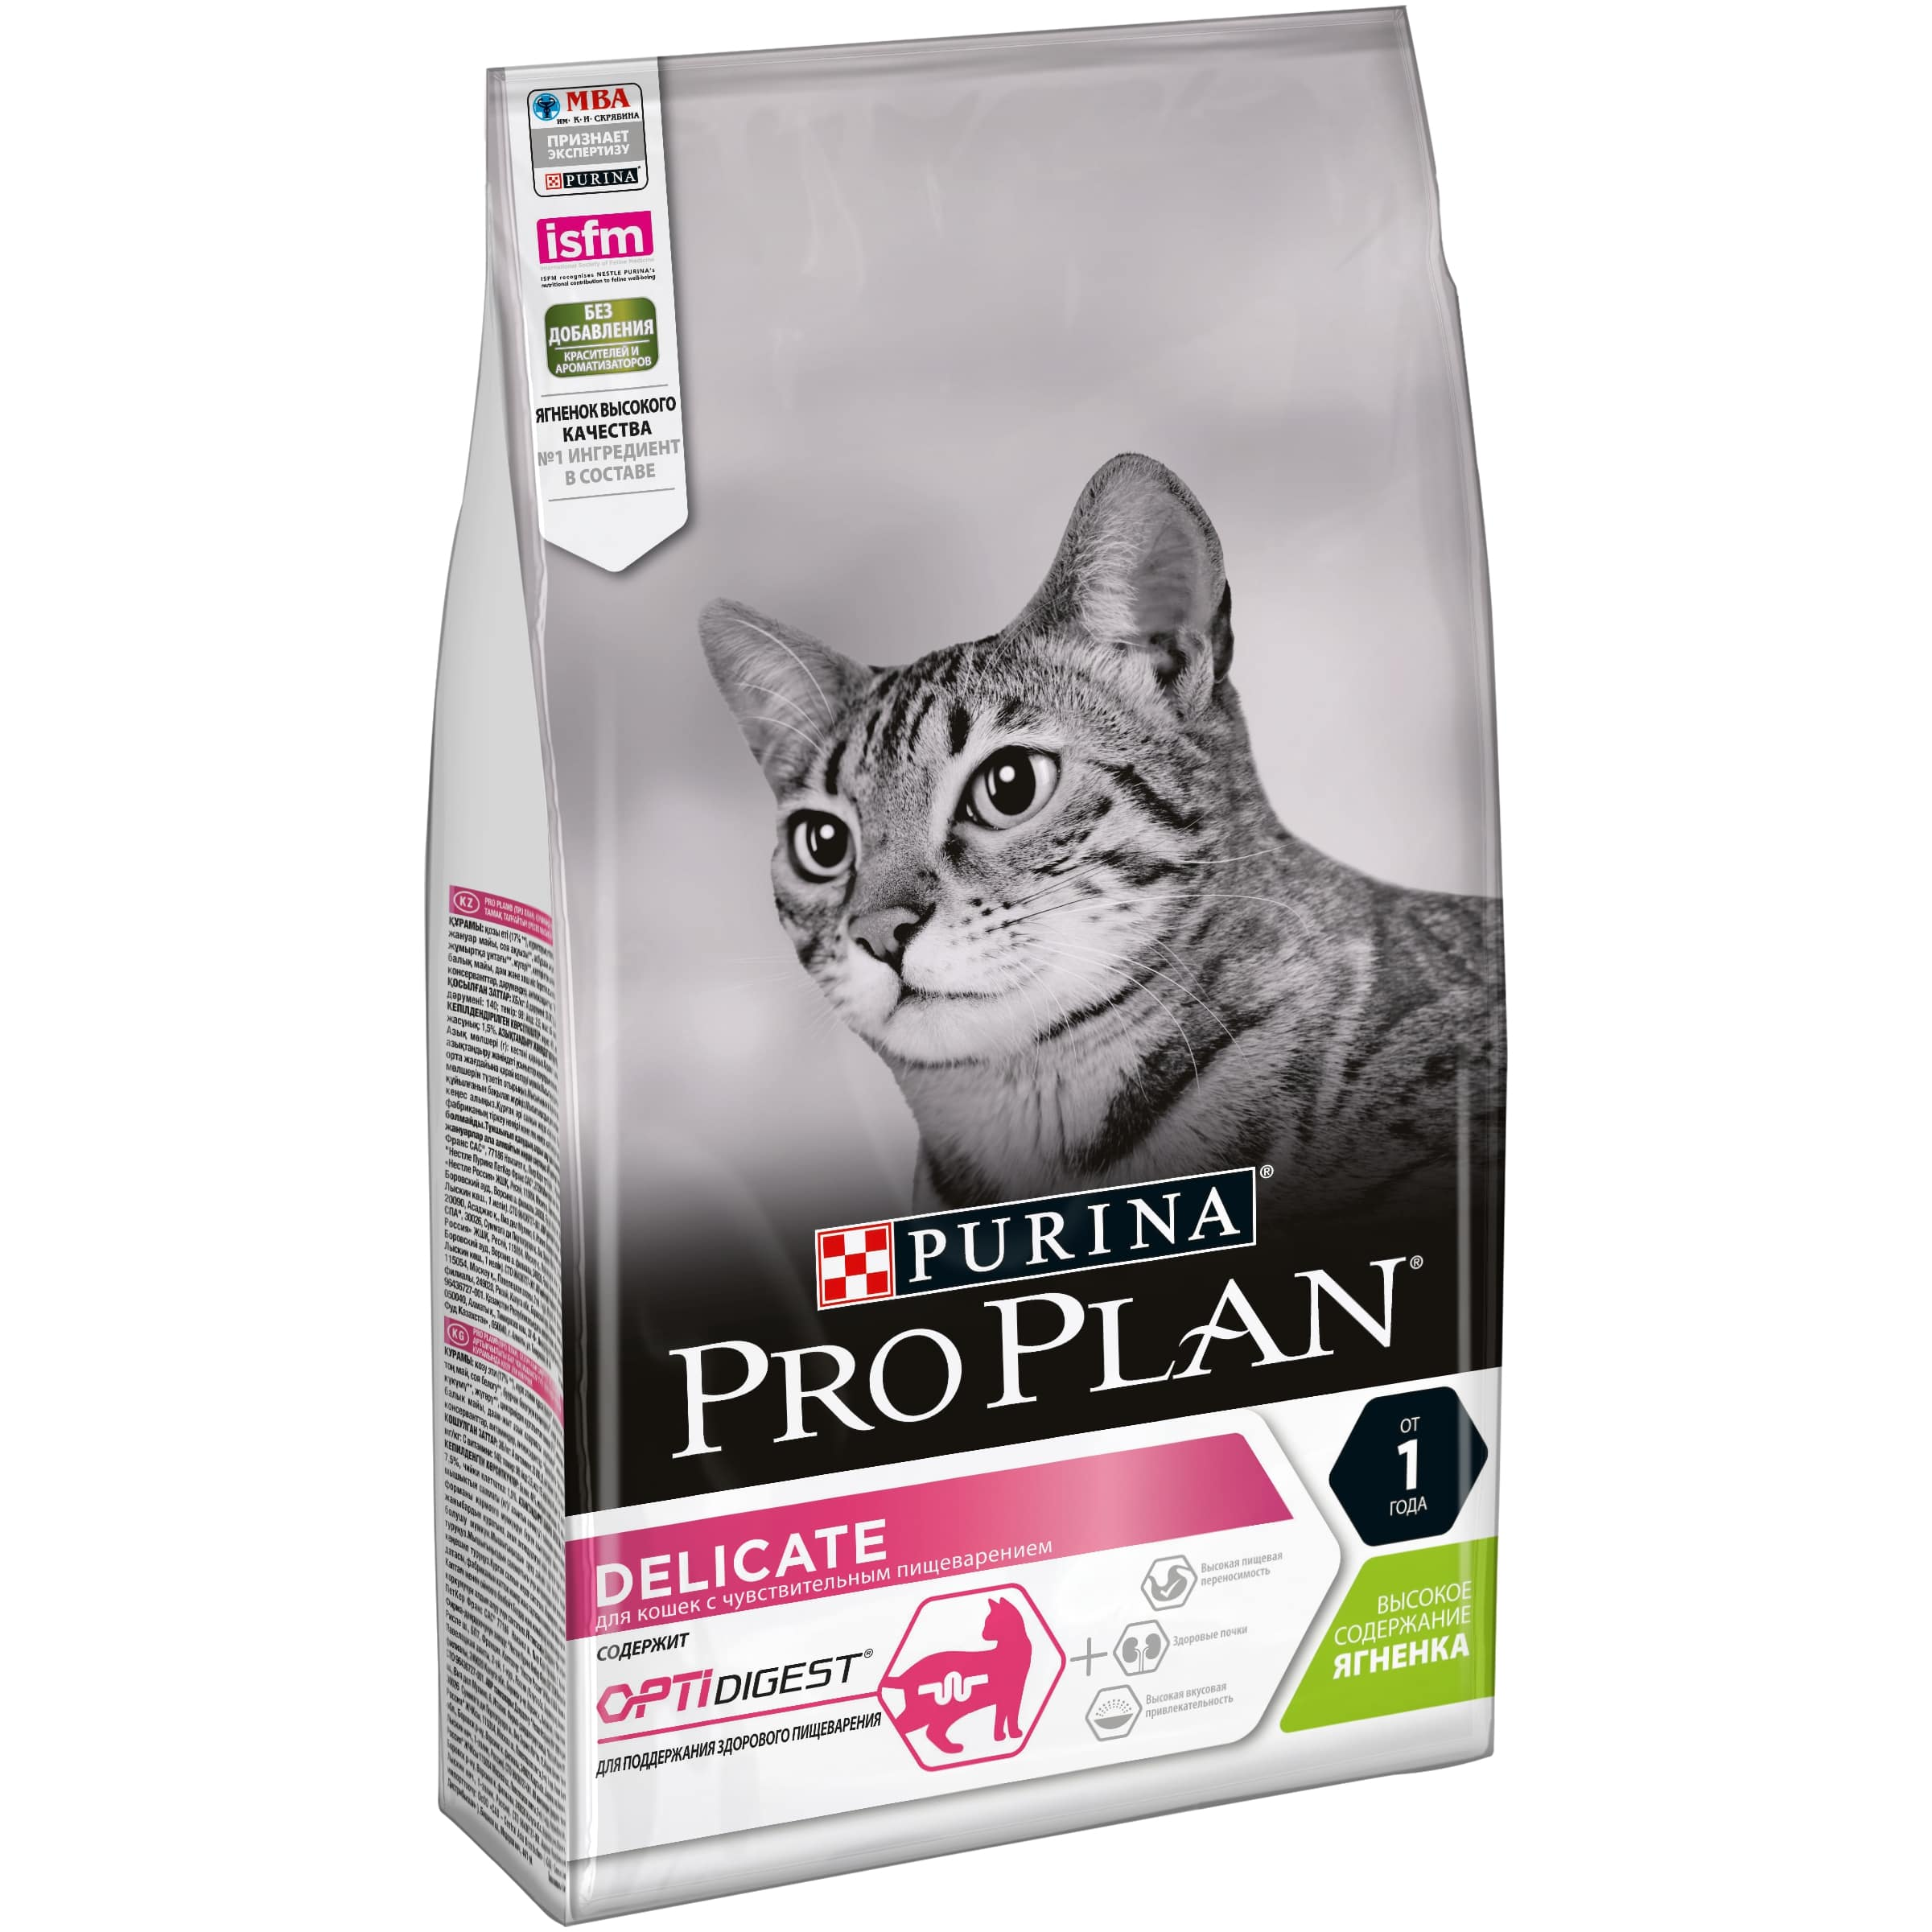 Pro Plan dry food for cats with sensitive digestion and choosy for food, with a lamb, Package, 1.5 kg цена